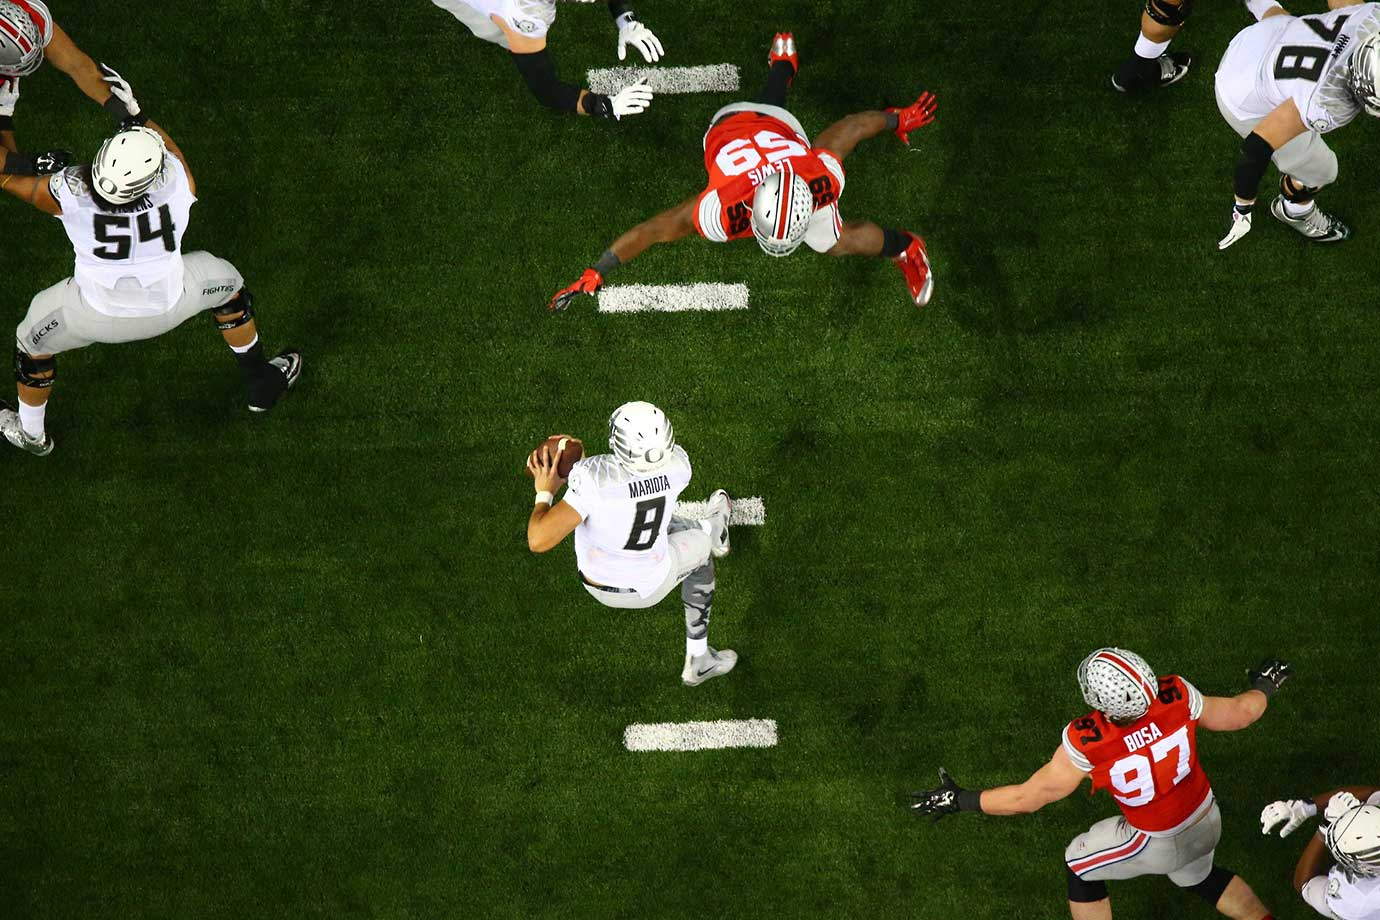 Oregon quarterback Marcus Mariotta gets pressured by an Ohio State's Tyquan Lewis in the 2015 college football national title game.